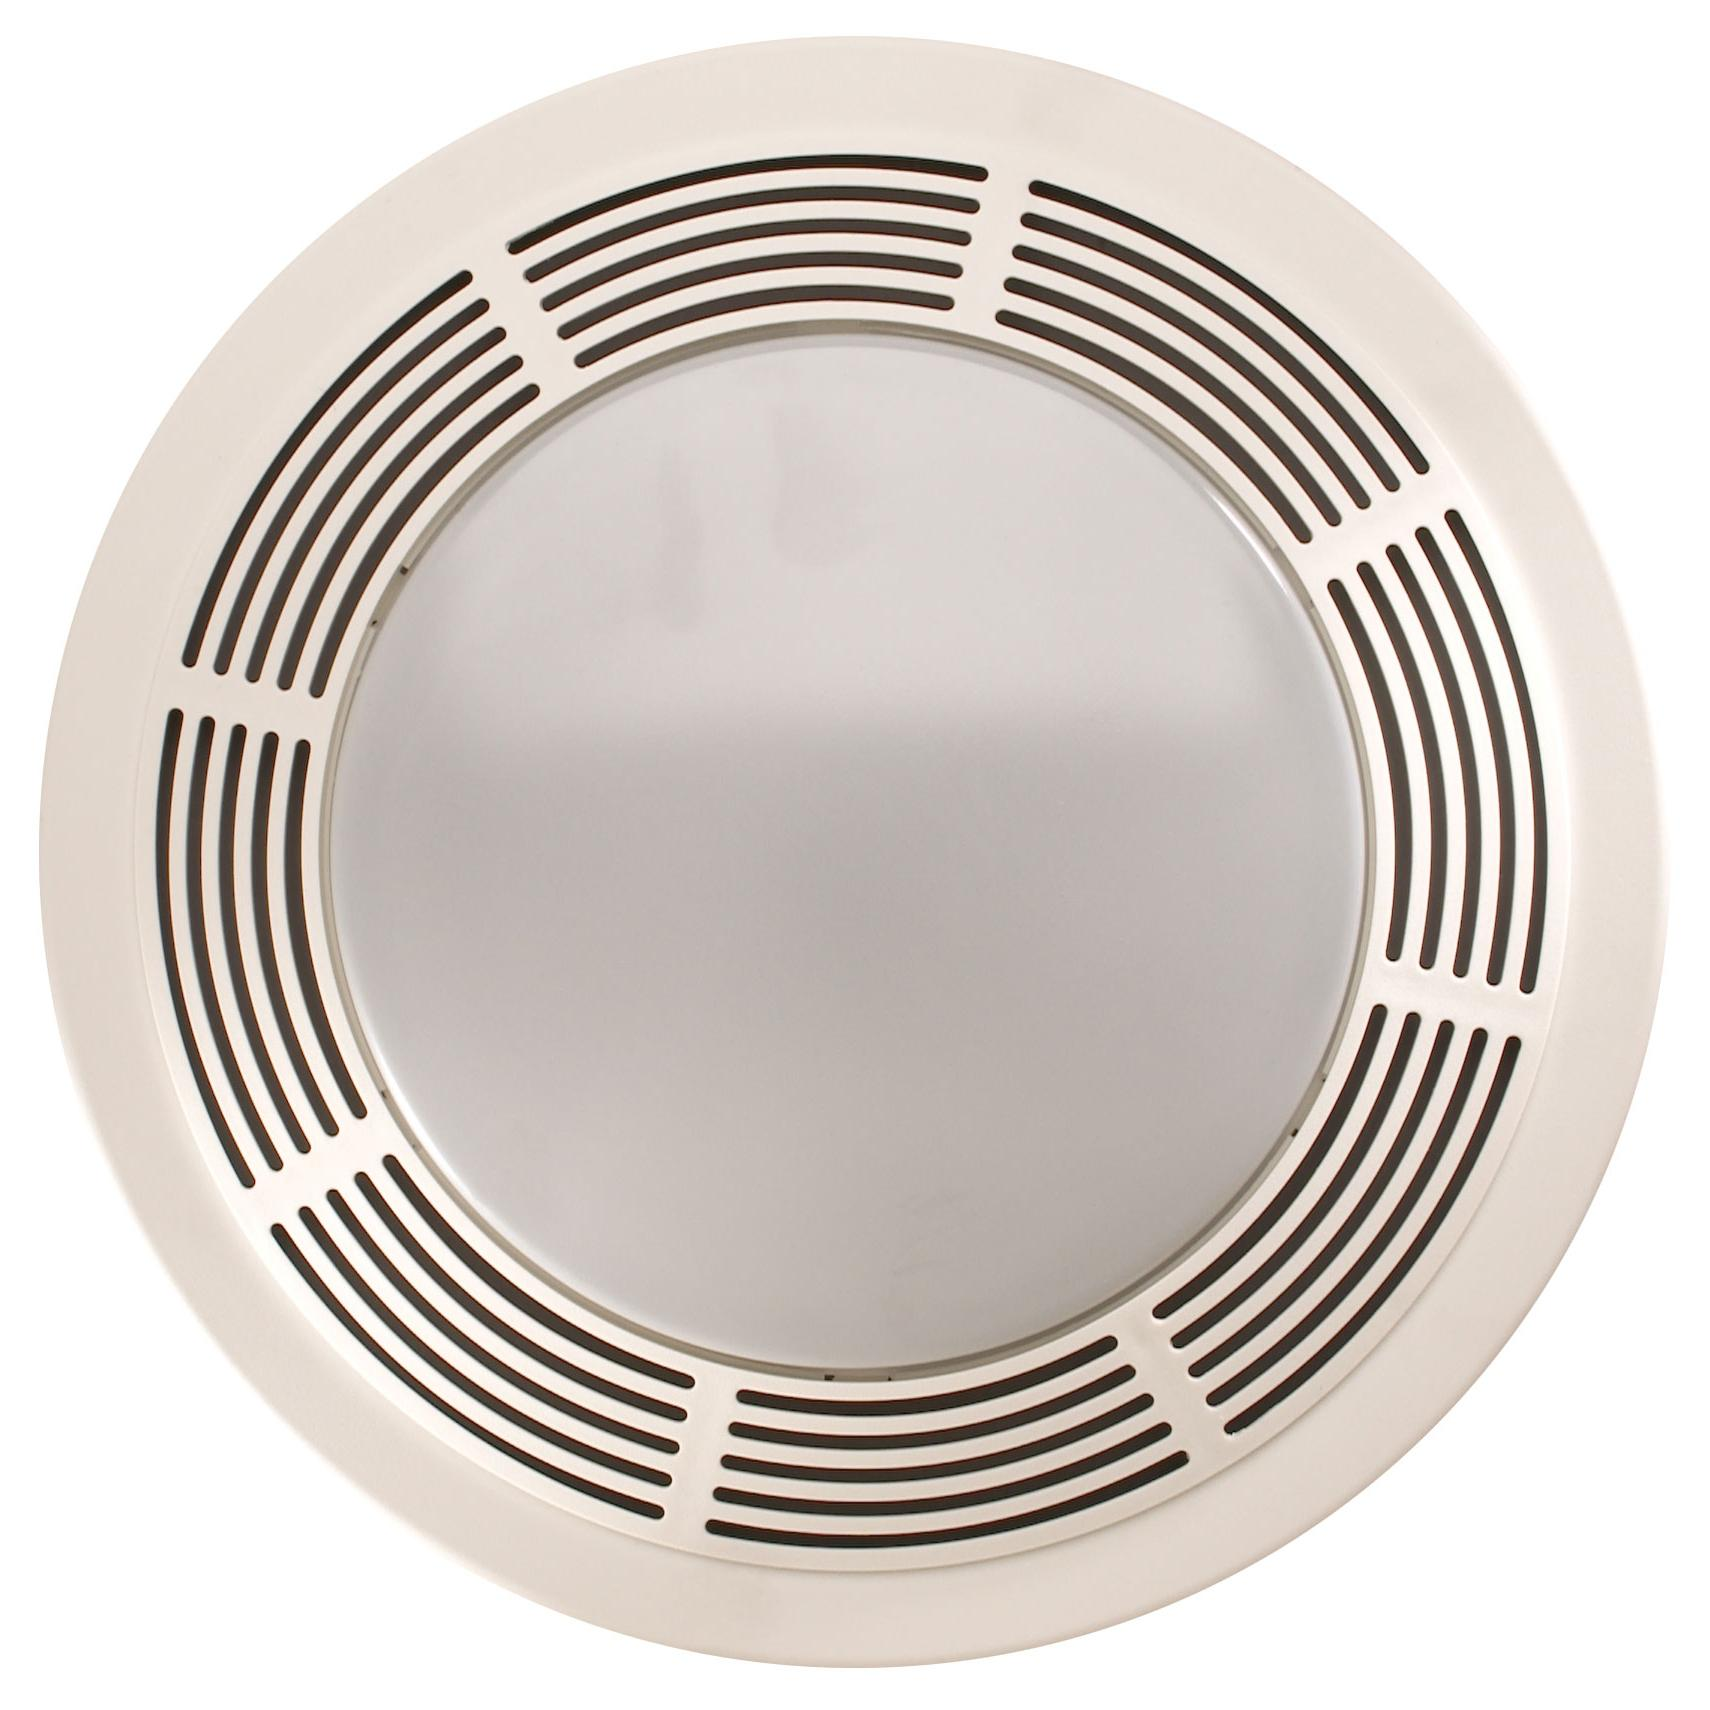 Broan round fan and light combo for bathroom and home - Round bathroom exhaust fan with light ...